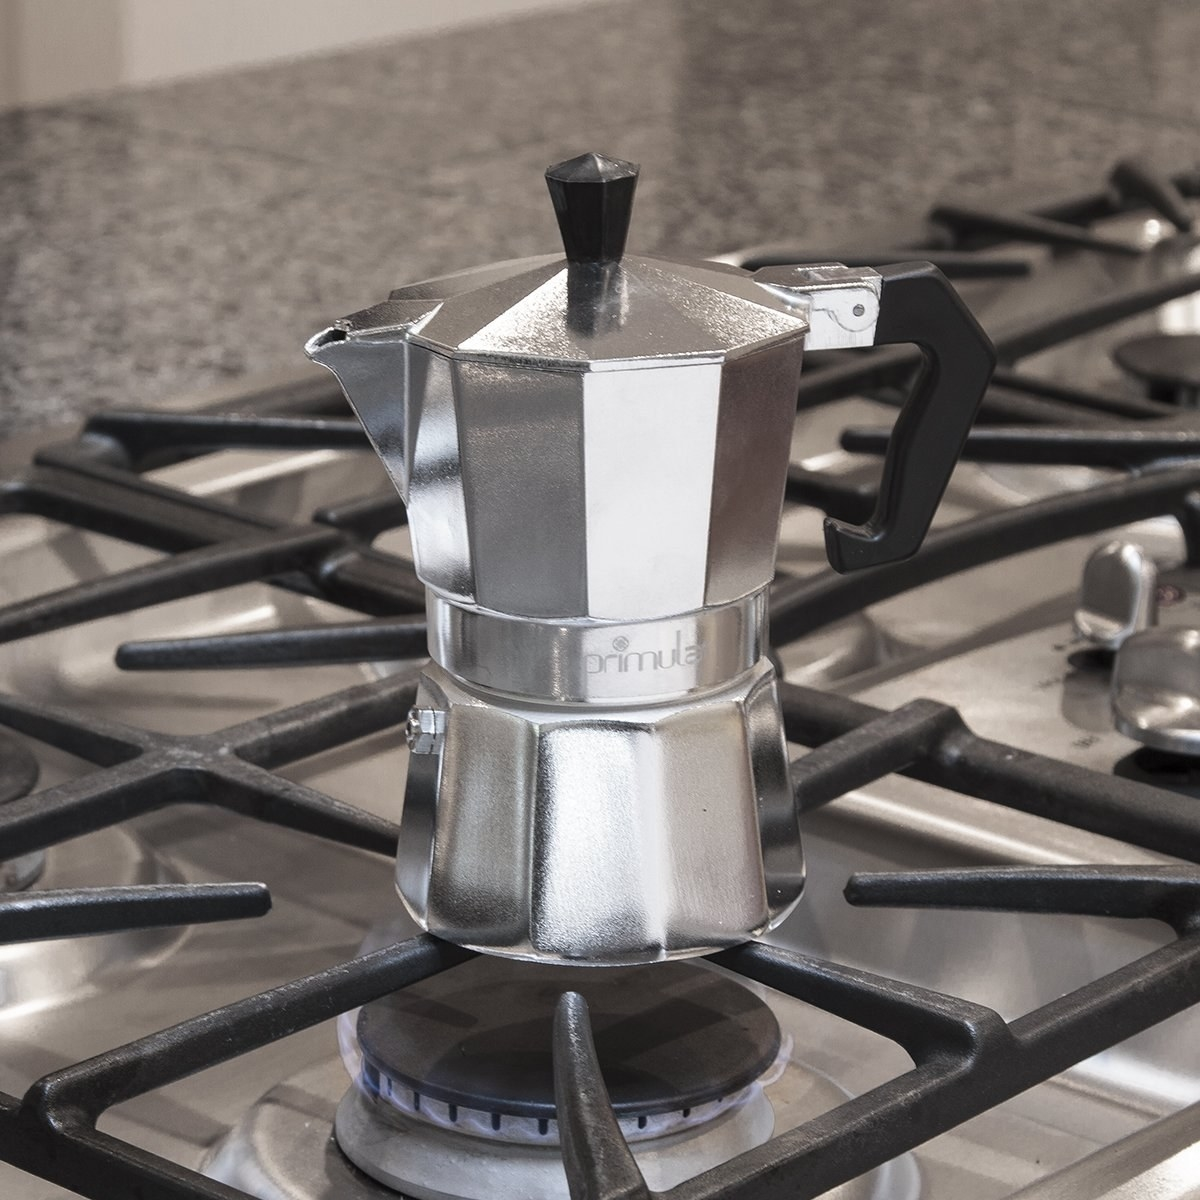 a metal stovetop espresso maker over a gas stove